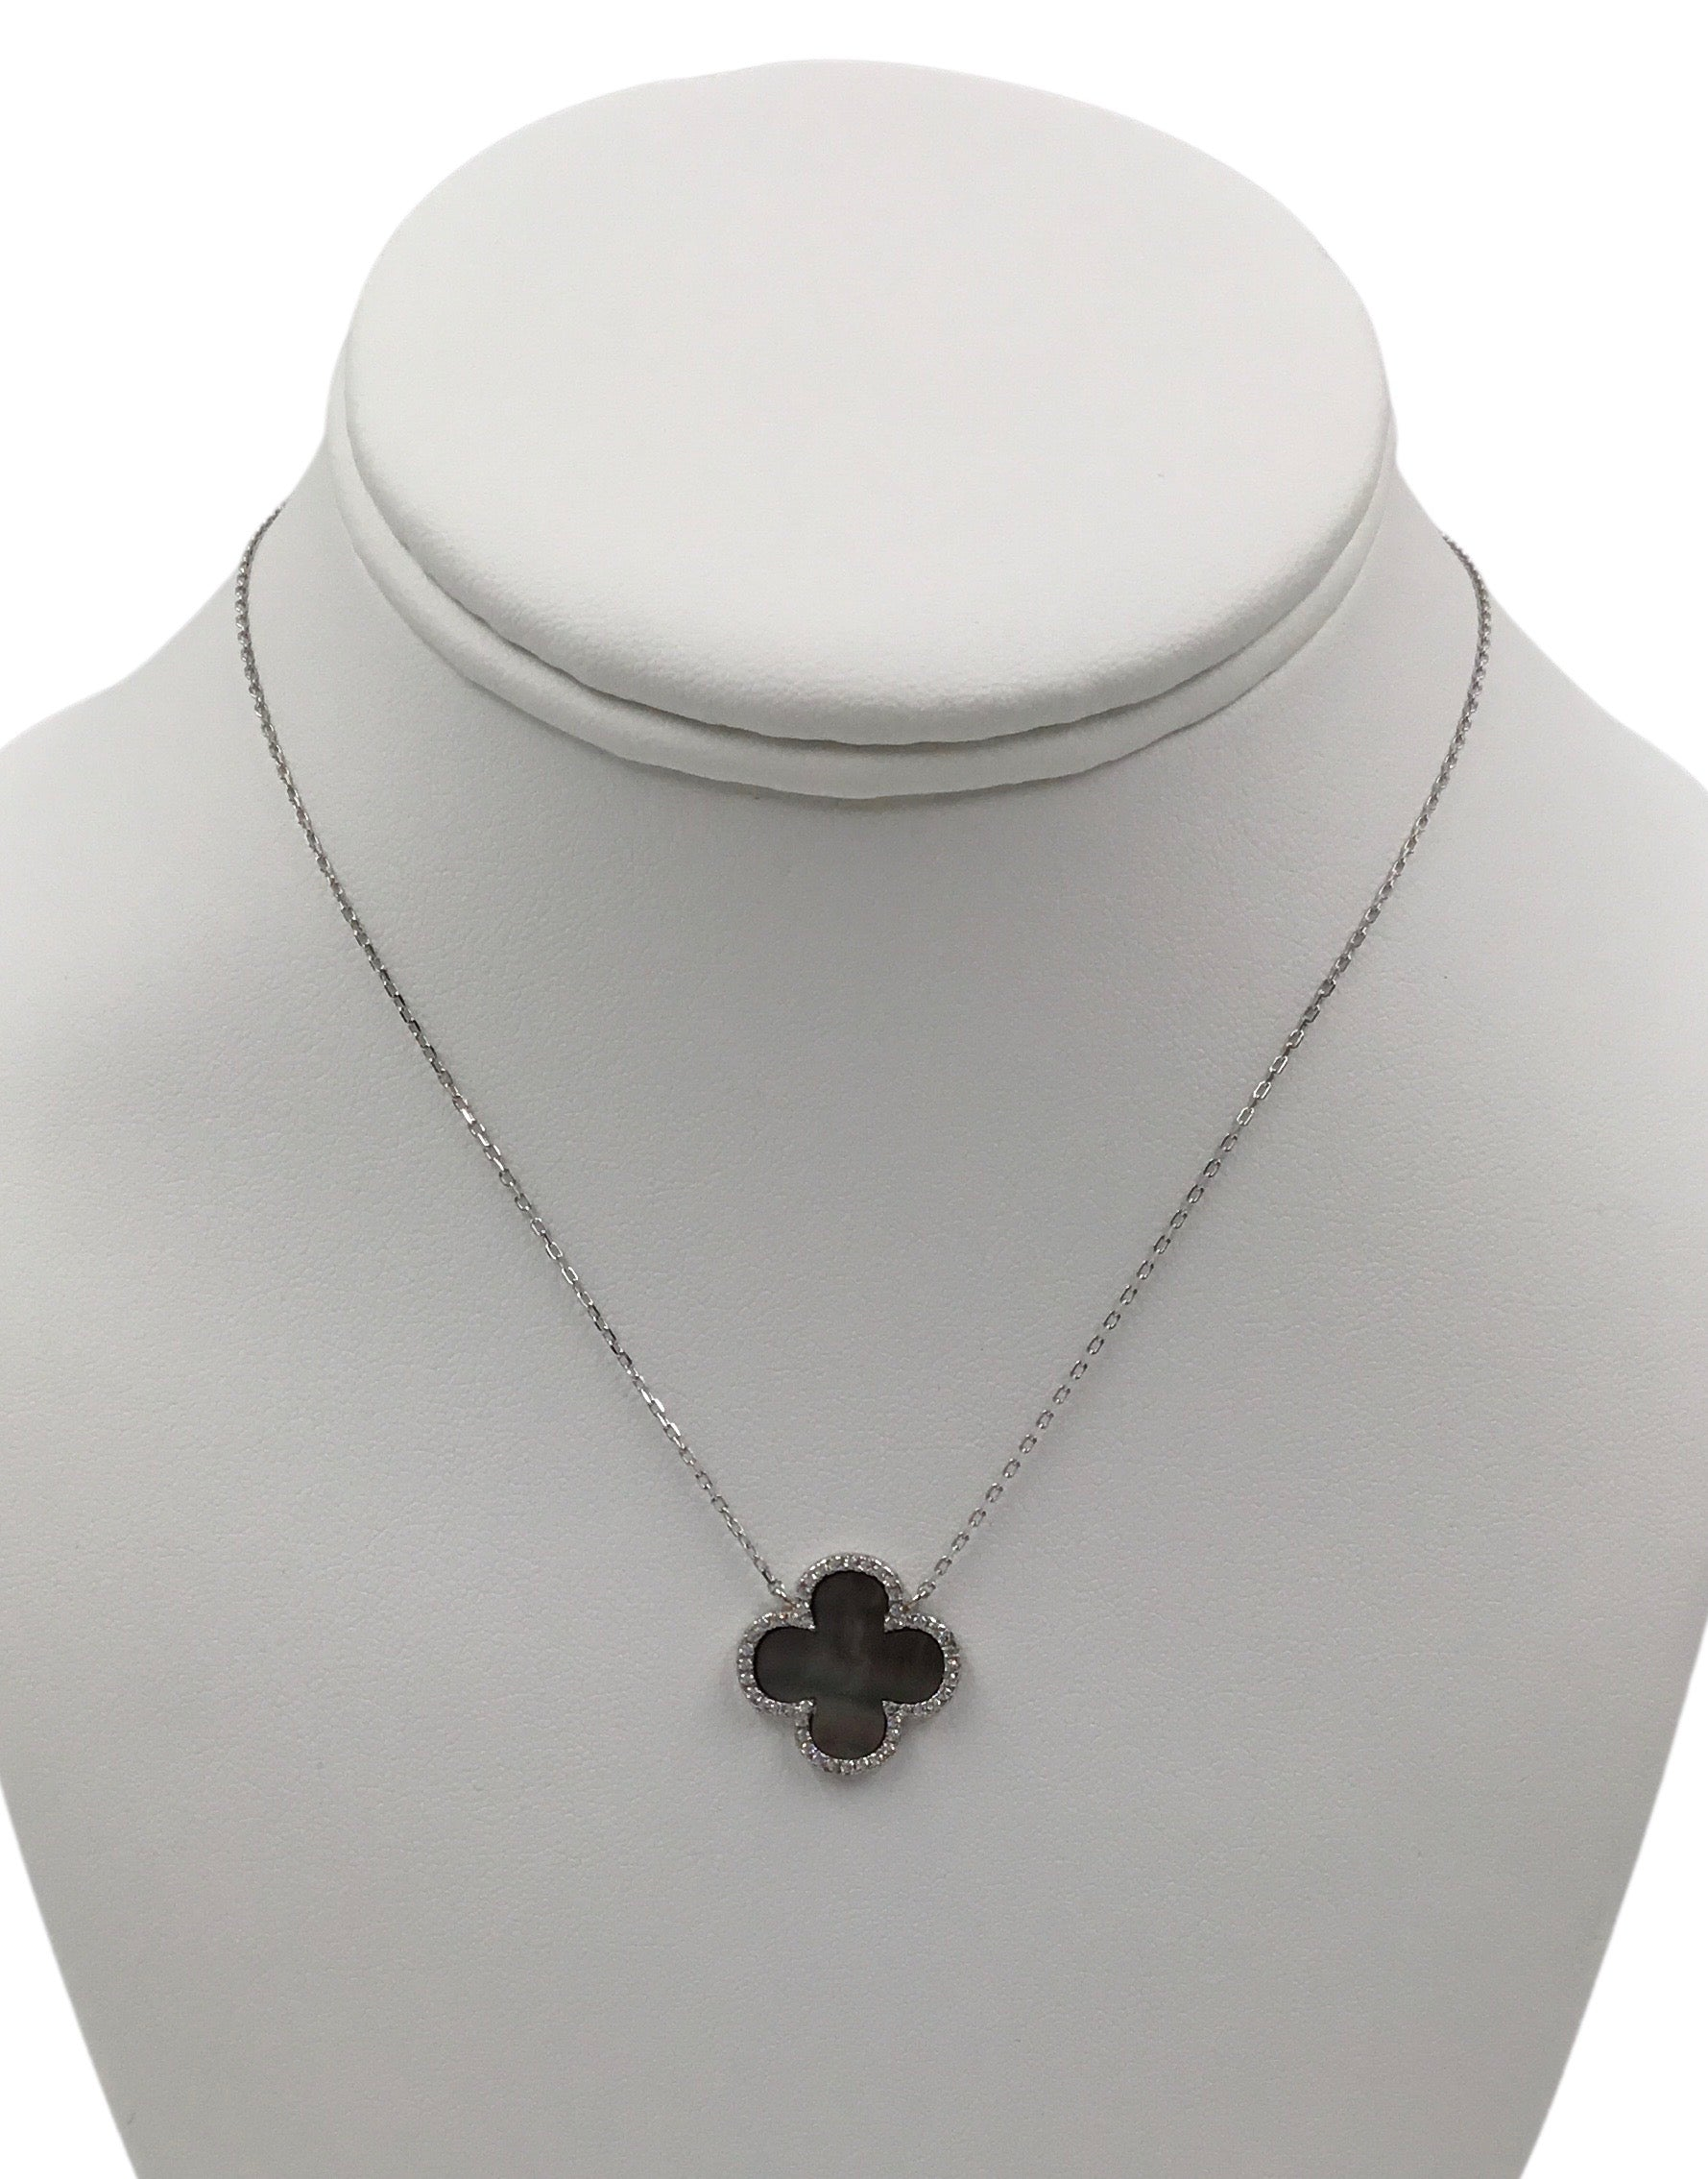 Mother of Pearl Clover and CZ Pendant  necklace